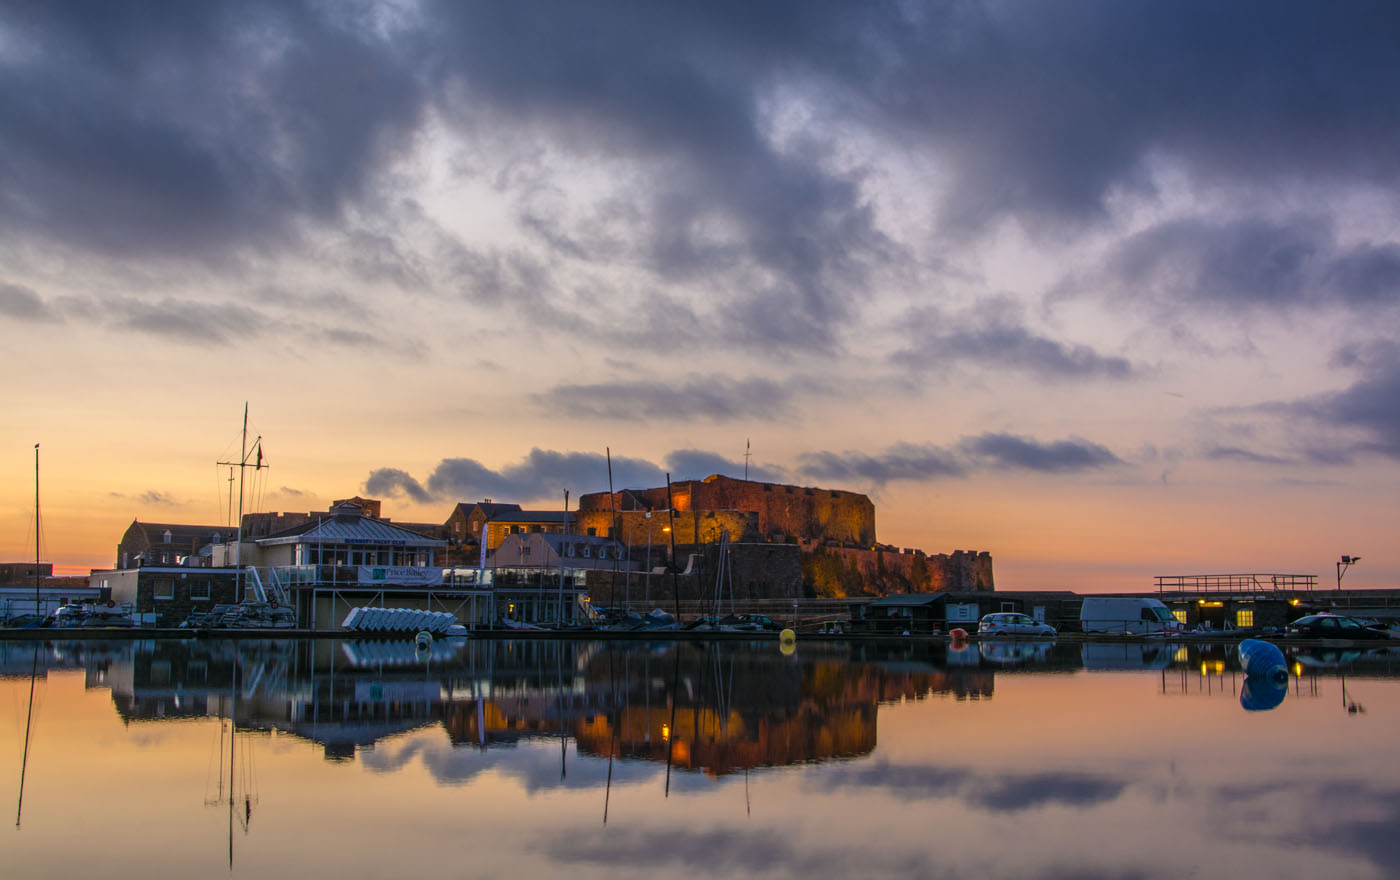 Castle Cornet at Sunrise